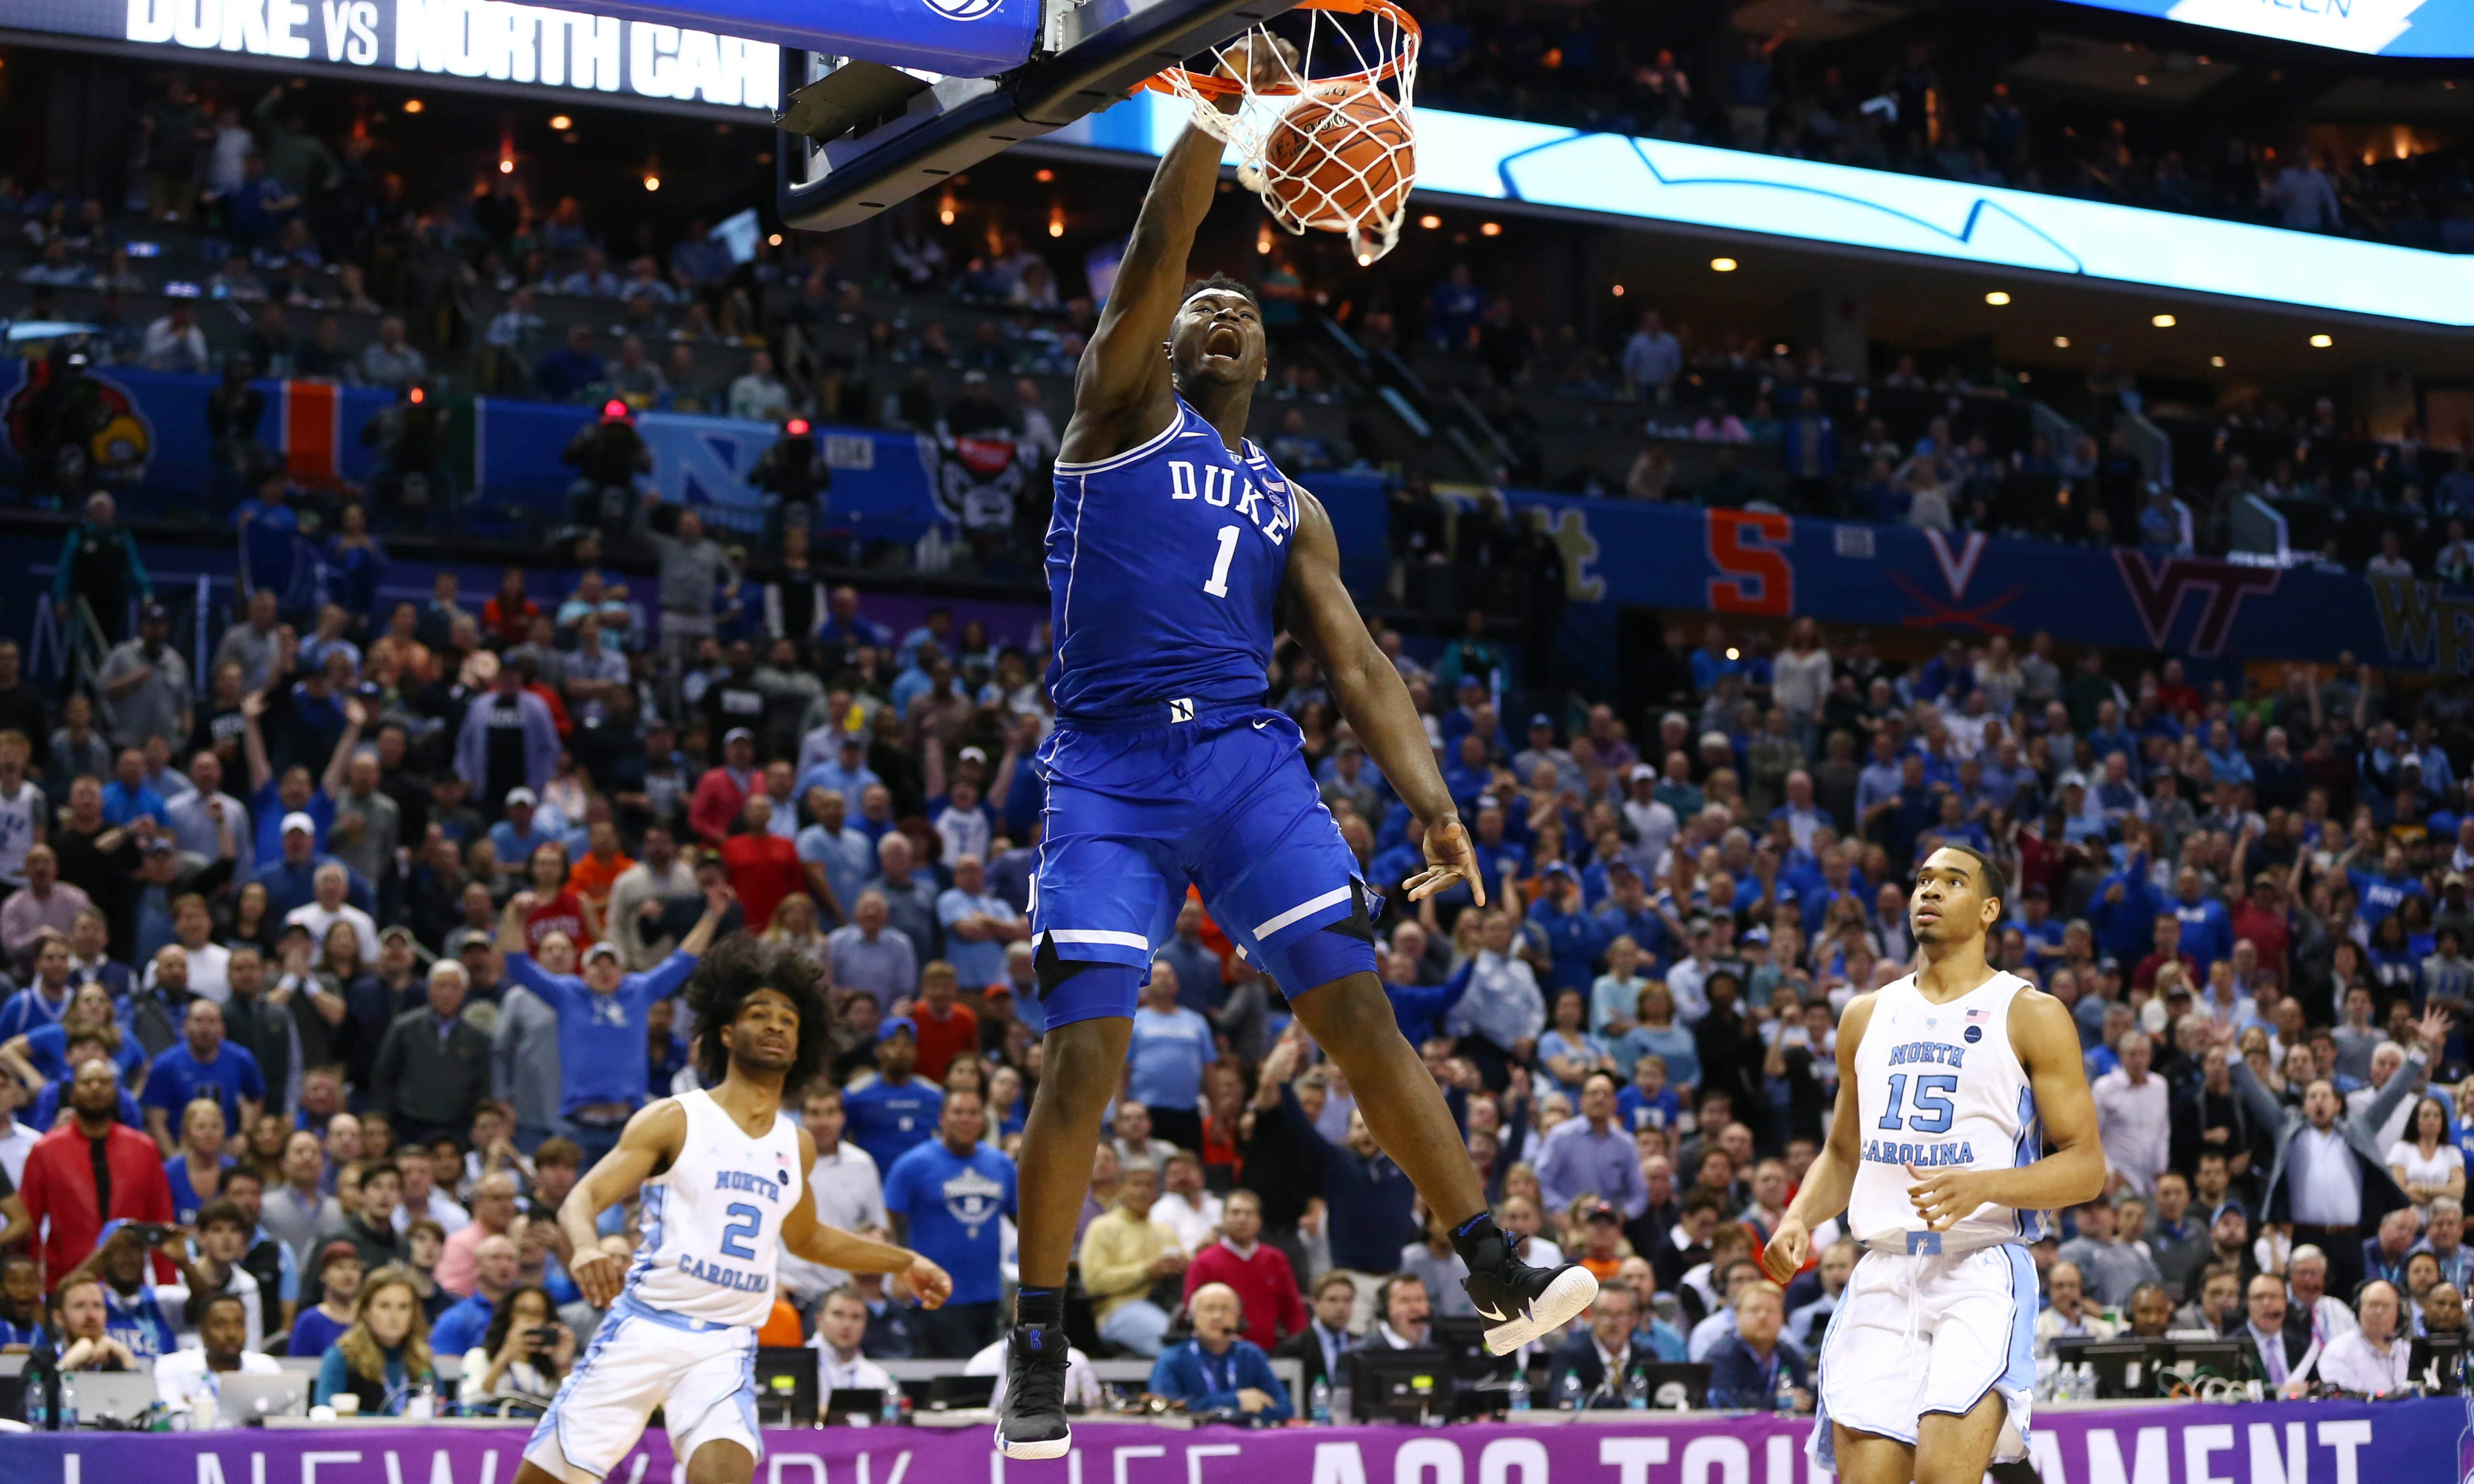 NCAA tournament 2019: our writers predict the winners, sleepers and upsets